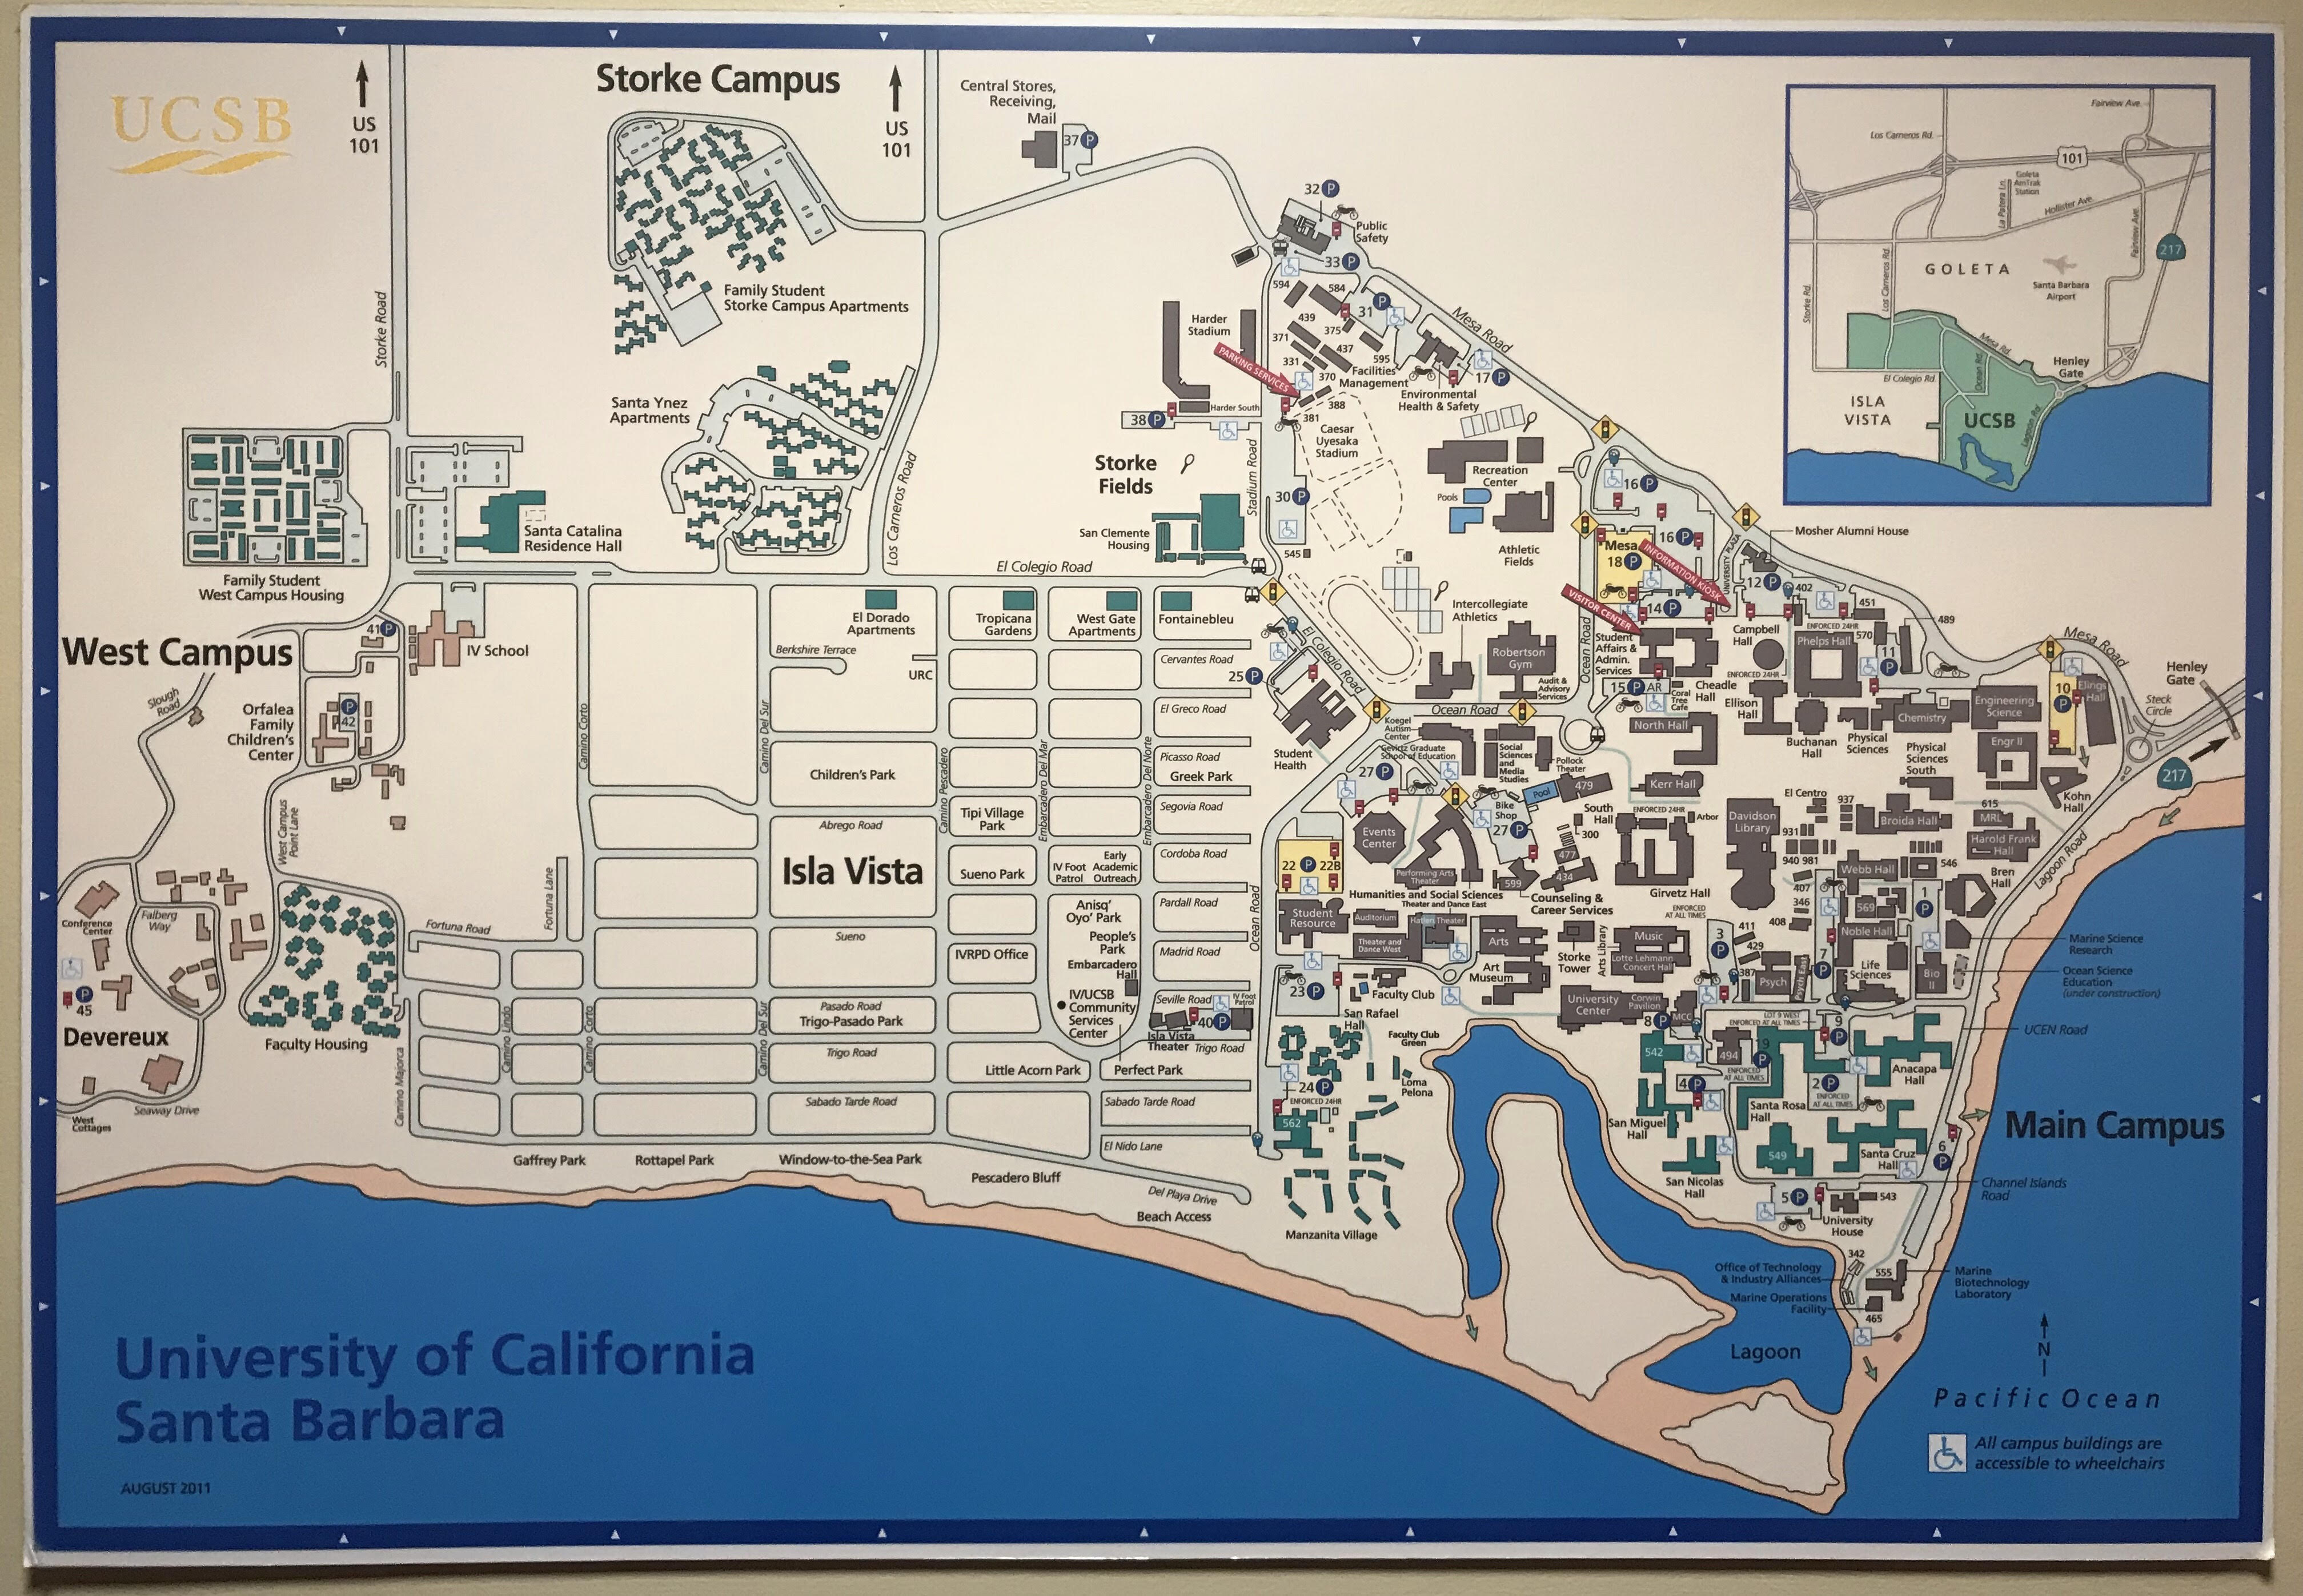 Behrooz Parhami In Blog Comments 0 Email This Tags Diagram Bathroom Sink Map Of Isla Vista And Ucsb Including Main West Campus Areas